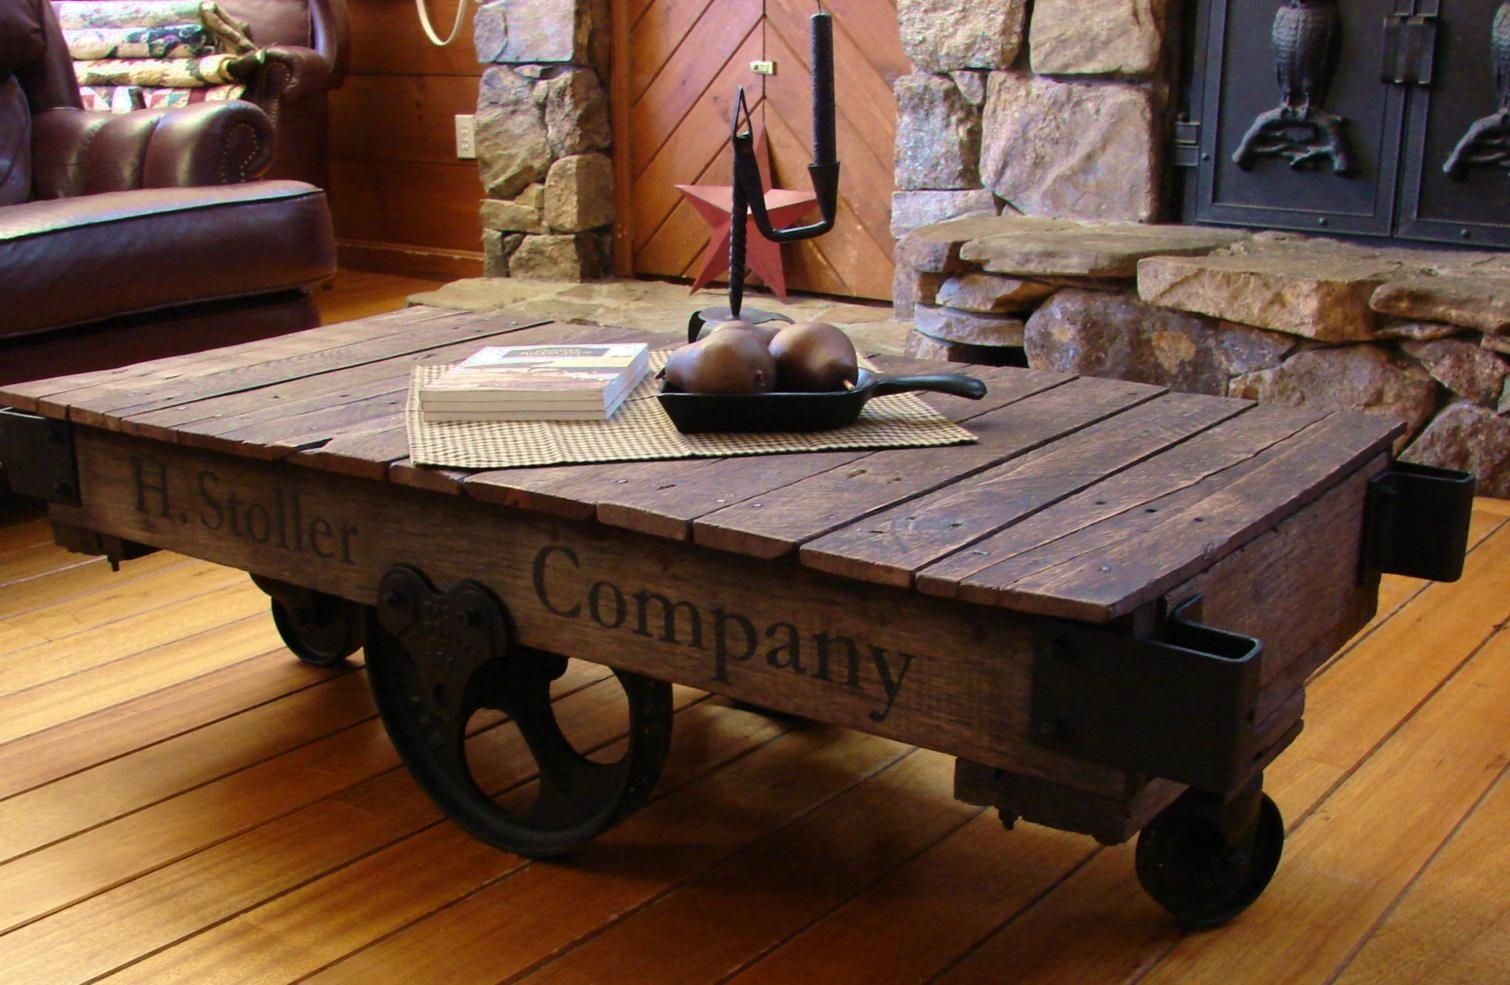 Home Brewed Coffee Tables | Deebeecool for Mill Large Coffee Tables (Image 10 of 30)